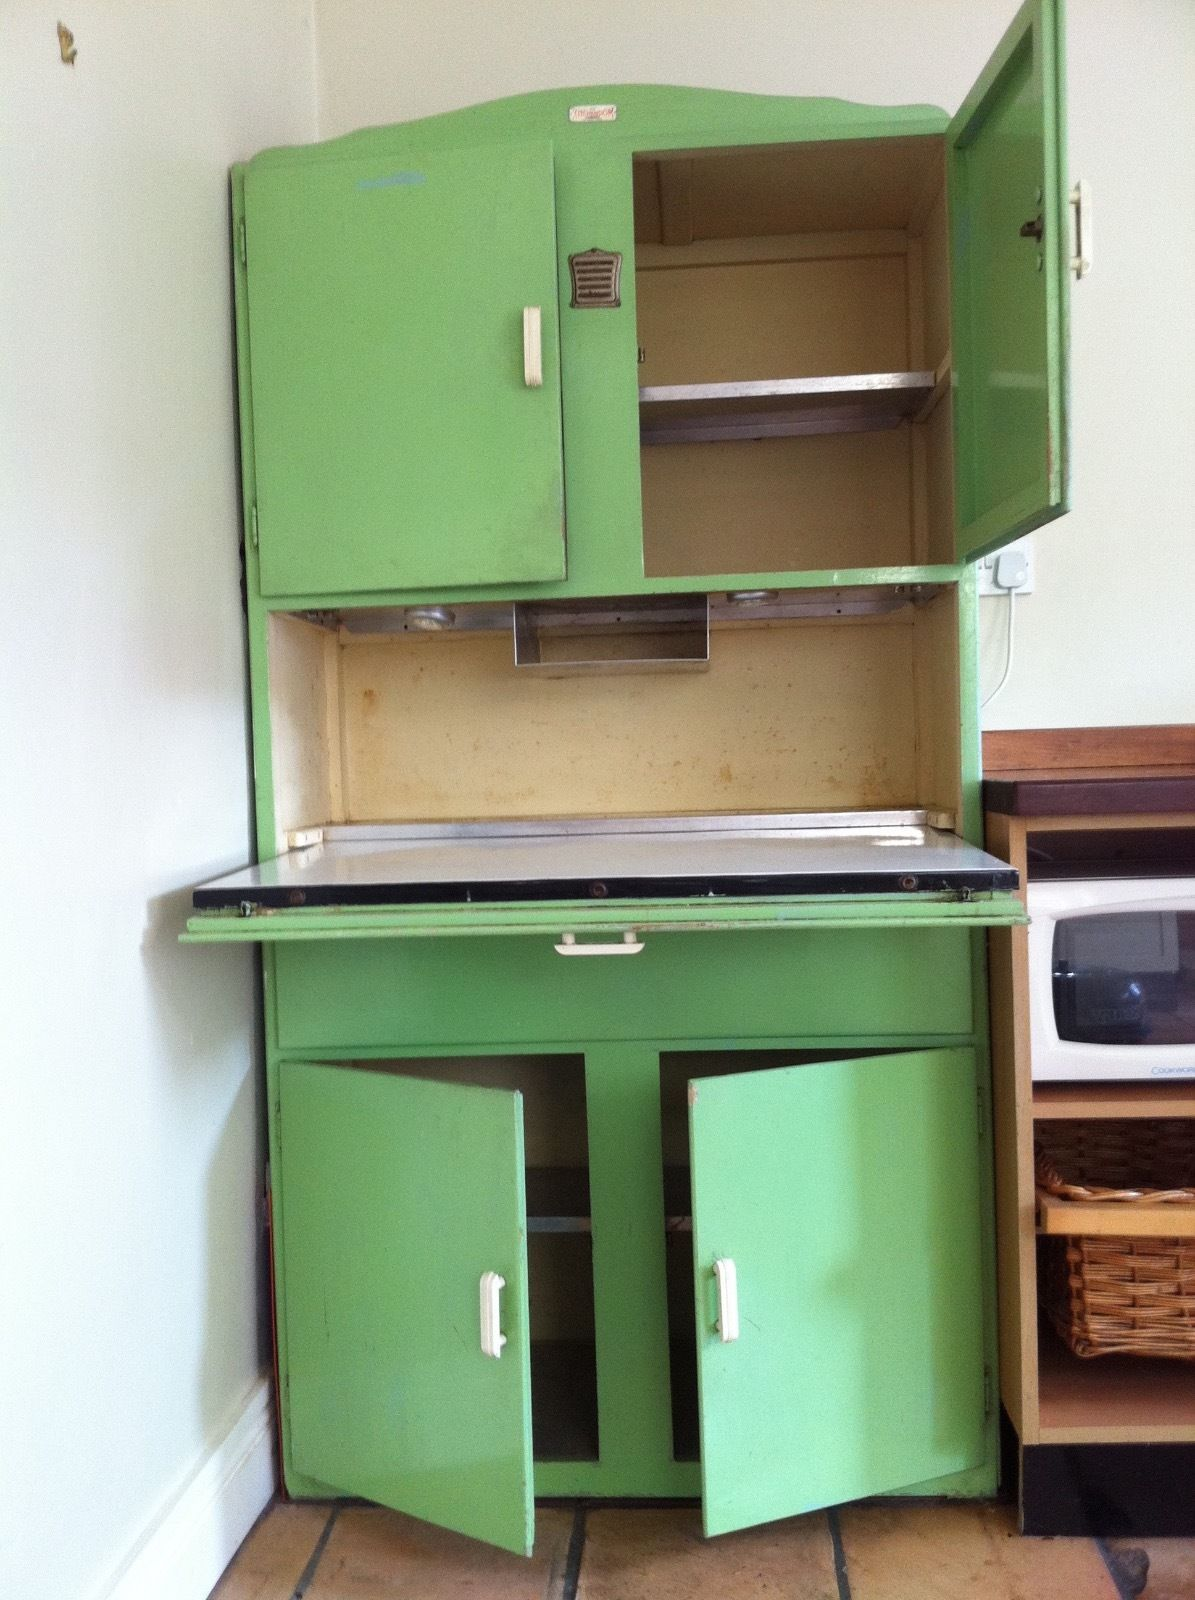 Original vintage retro 1940 50s kitchen cupboard larder pantry  unit kitchenette in. Shefco  Kitchenette Retro Classic Kitchen Cupboard Cabinet 1950s